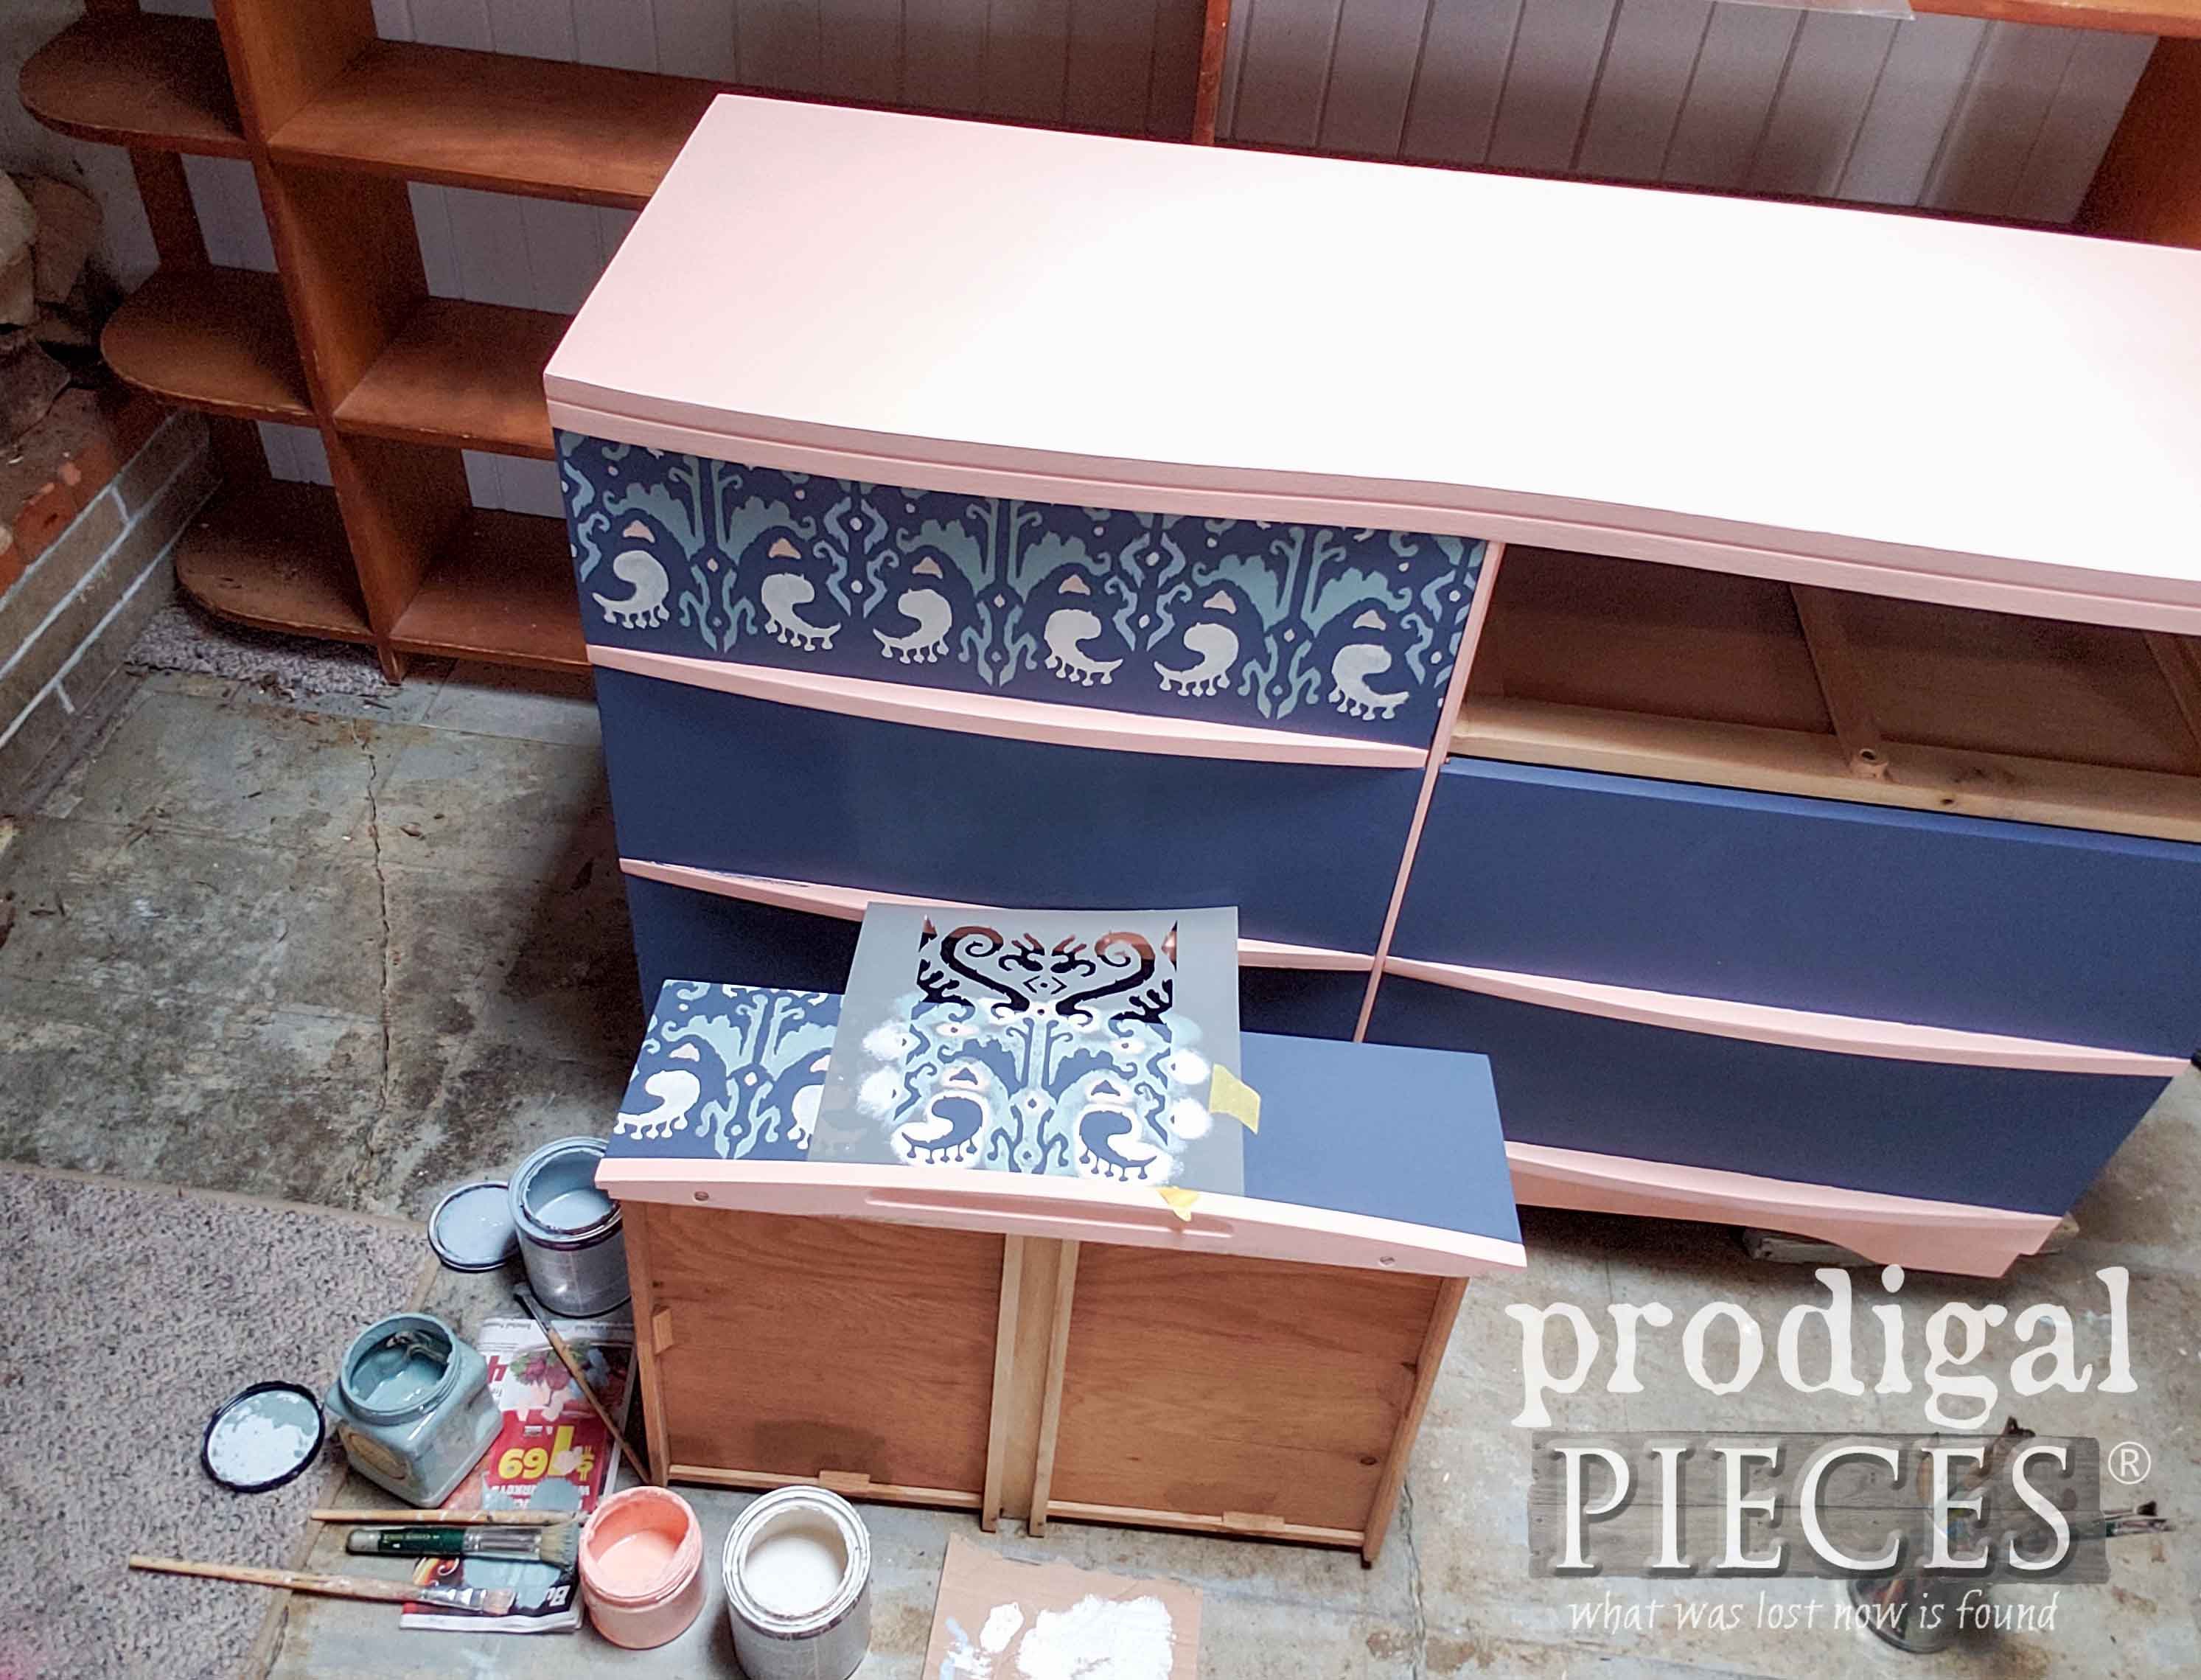 DecoArt Ikat Stencil Being Applied to Mid Century Modern Dresser by Larissa of Prodigal Pieces | prodigalpieces.com